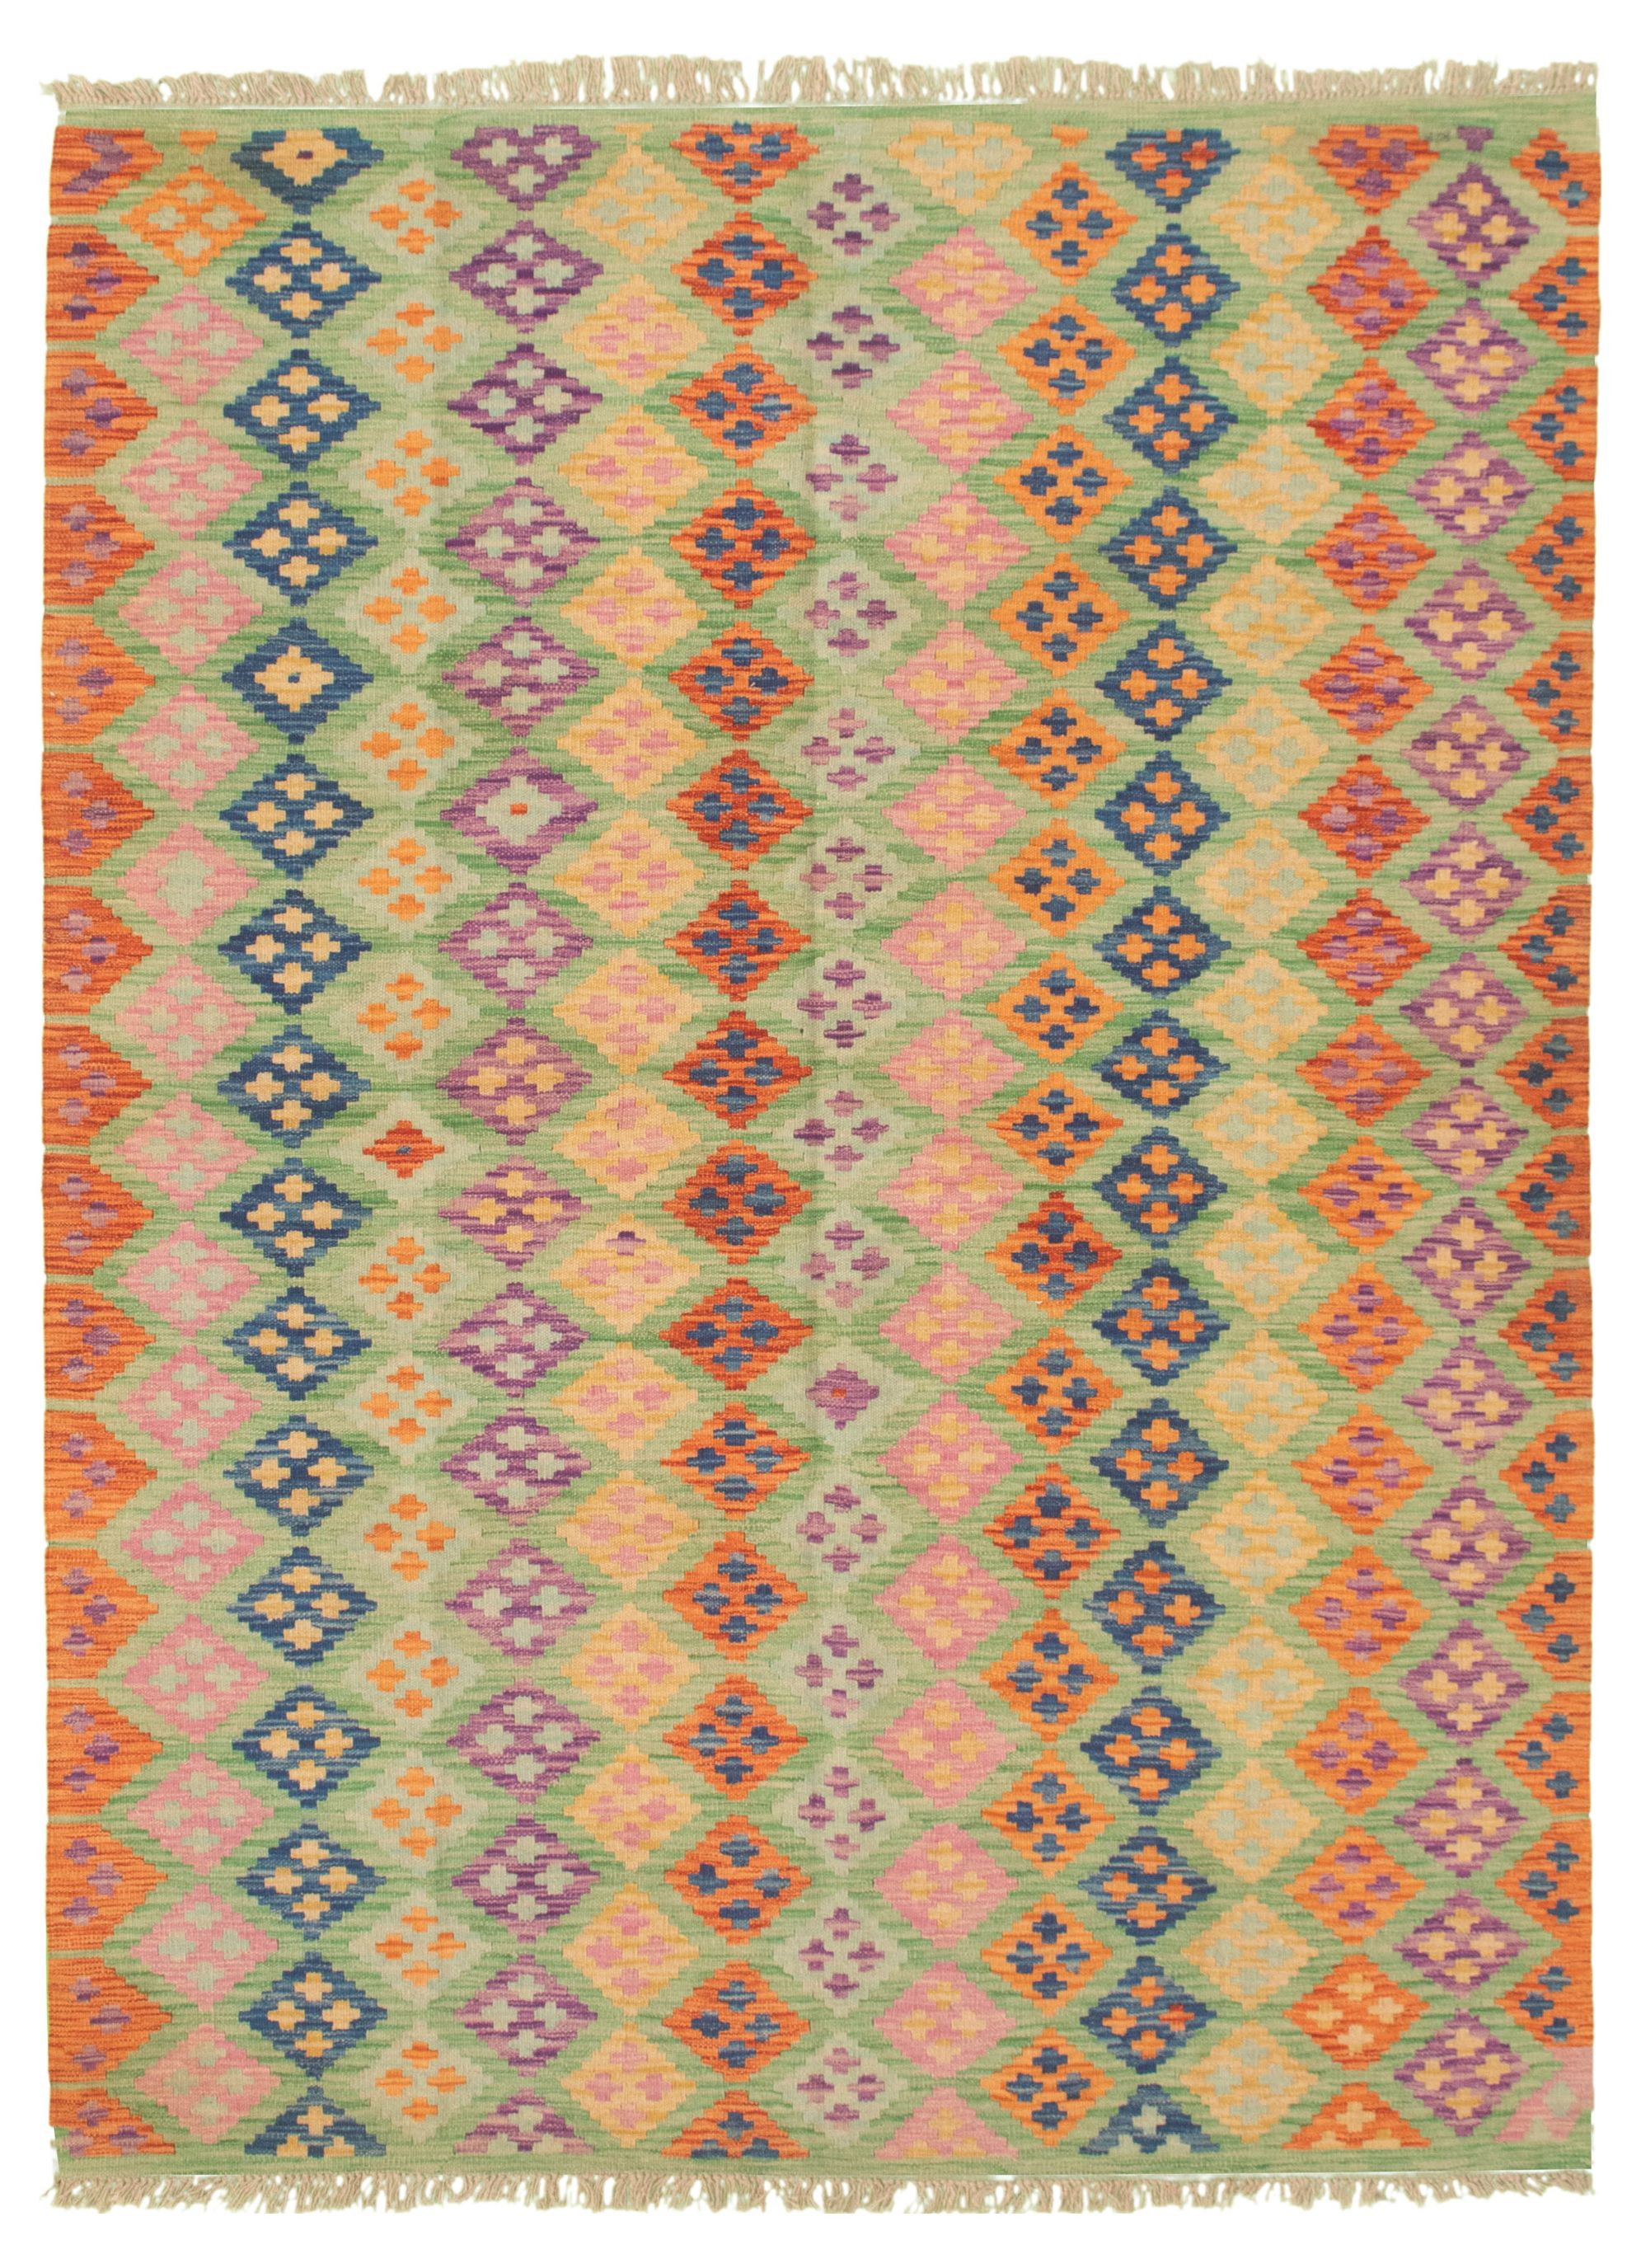 "Hand woven Bold and Colorful  Orange Wool Kilim 6'2"" x 8'4"" Size: 6'2"" x 8'4"""